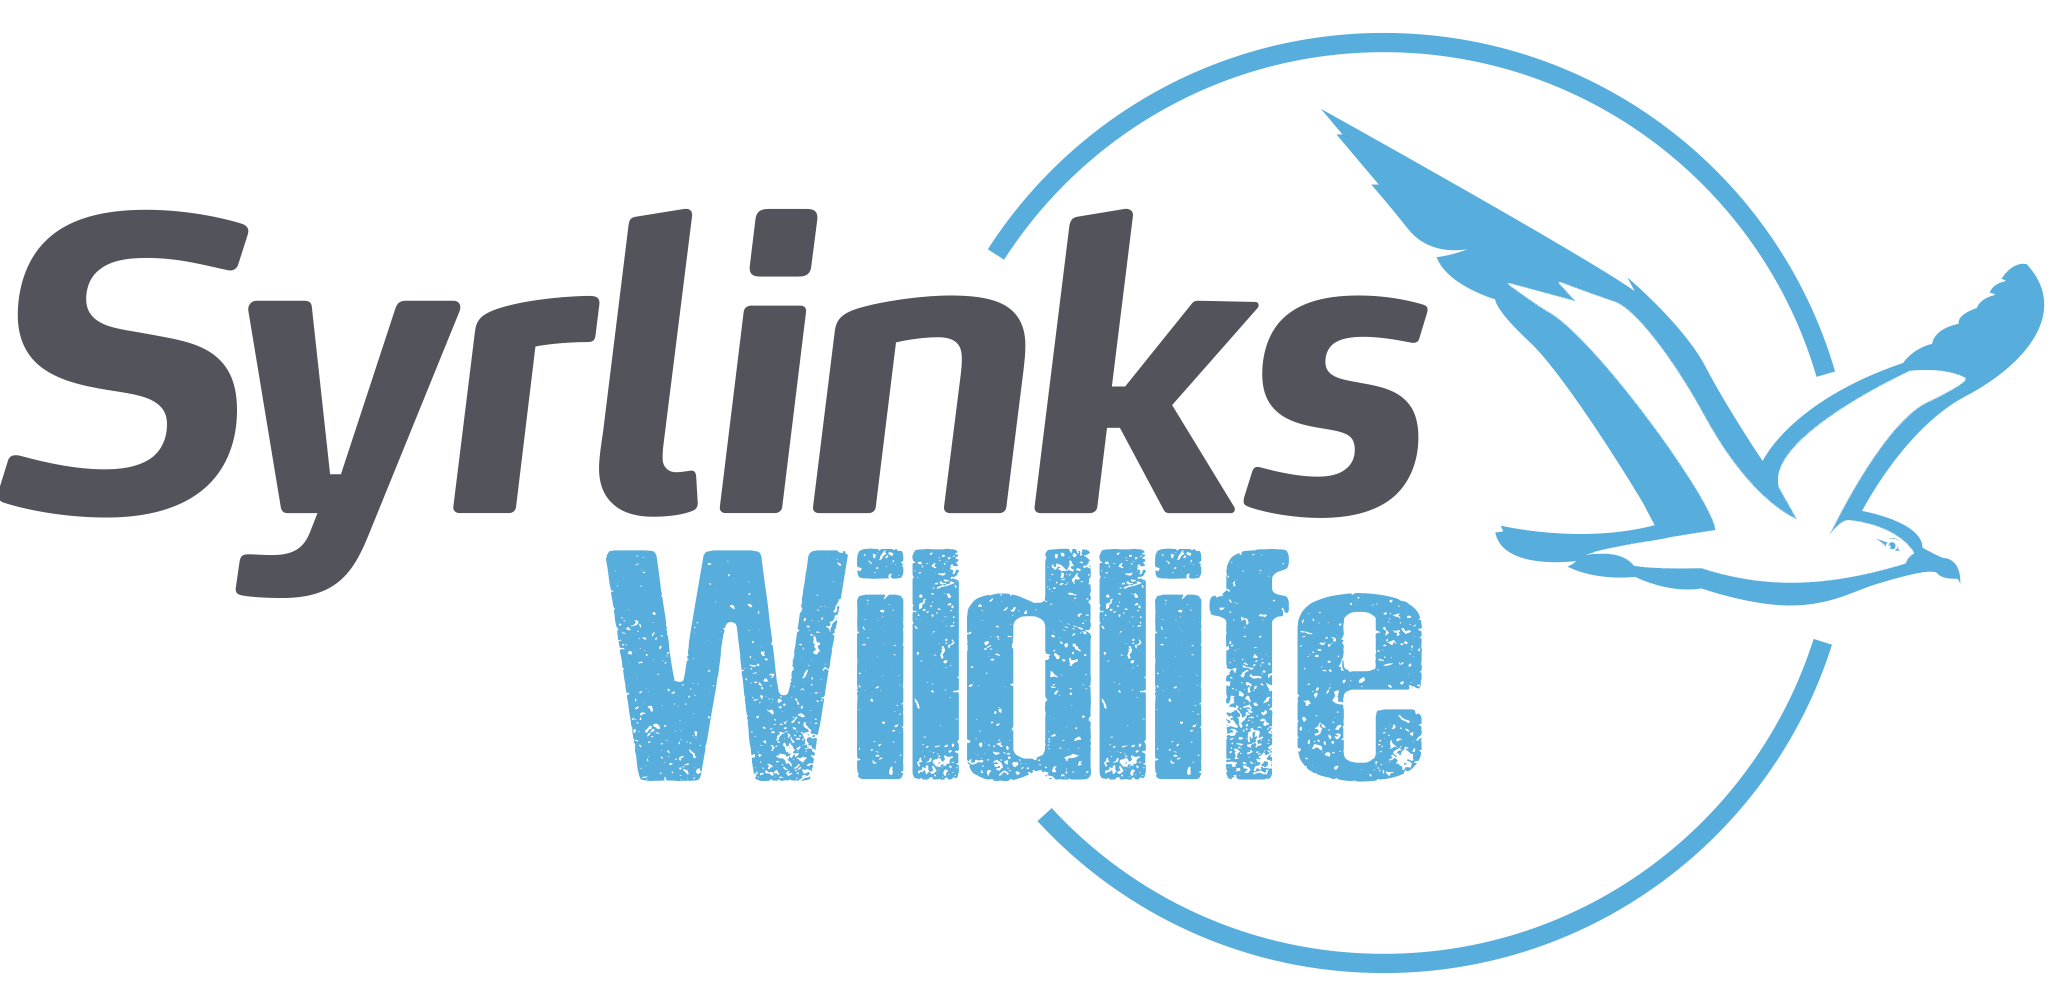 Syrlinks Wildlife | Argos Tracking Beacons